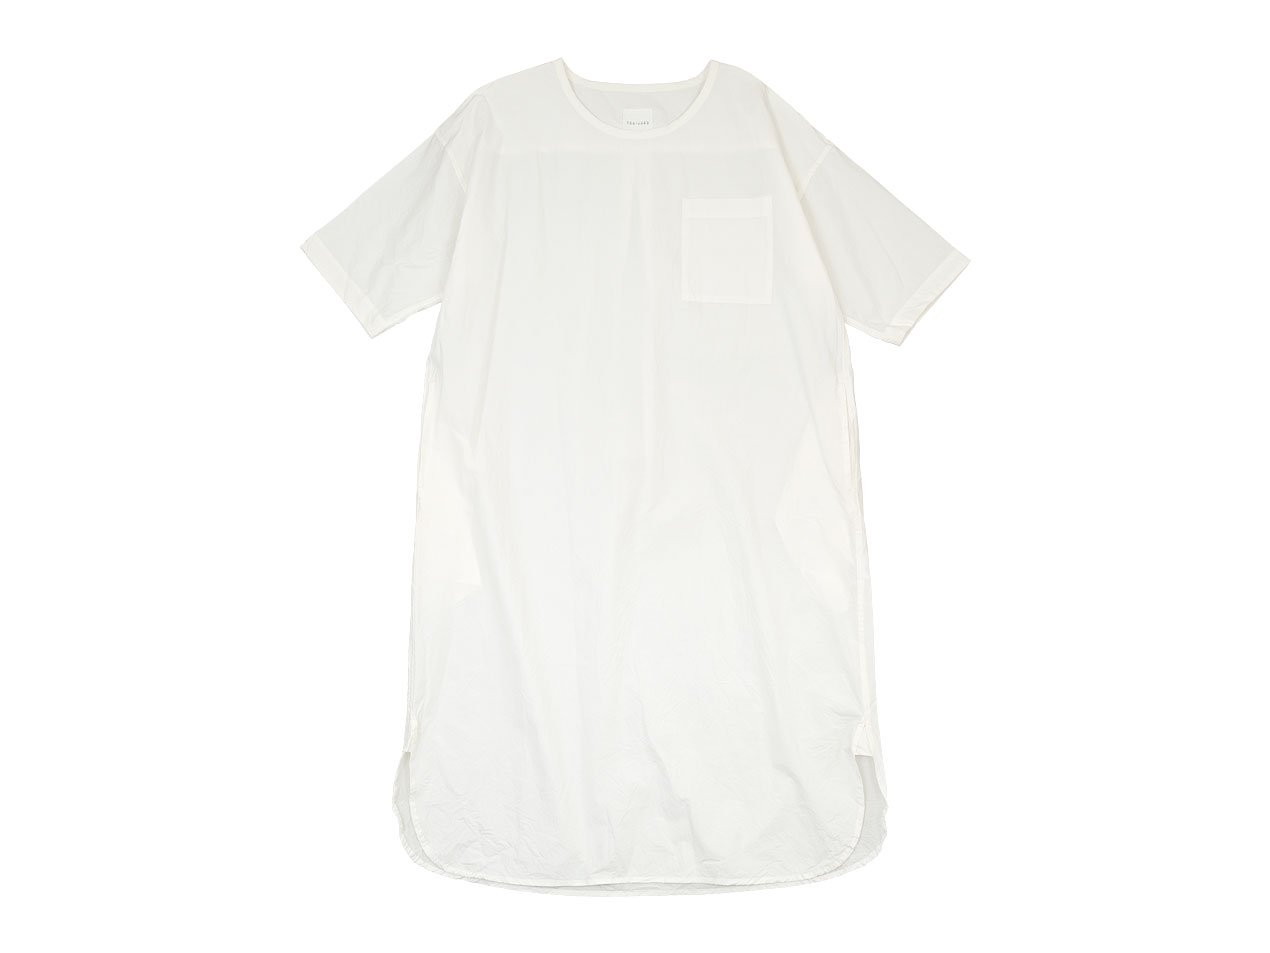 TOUJOURS Crew Neck Boy's Shirt Dress DUSTY WHITE【SM32BD02】